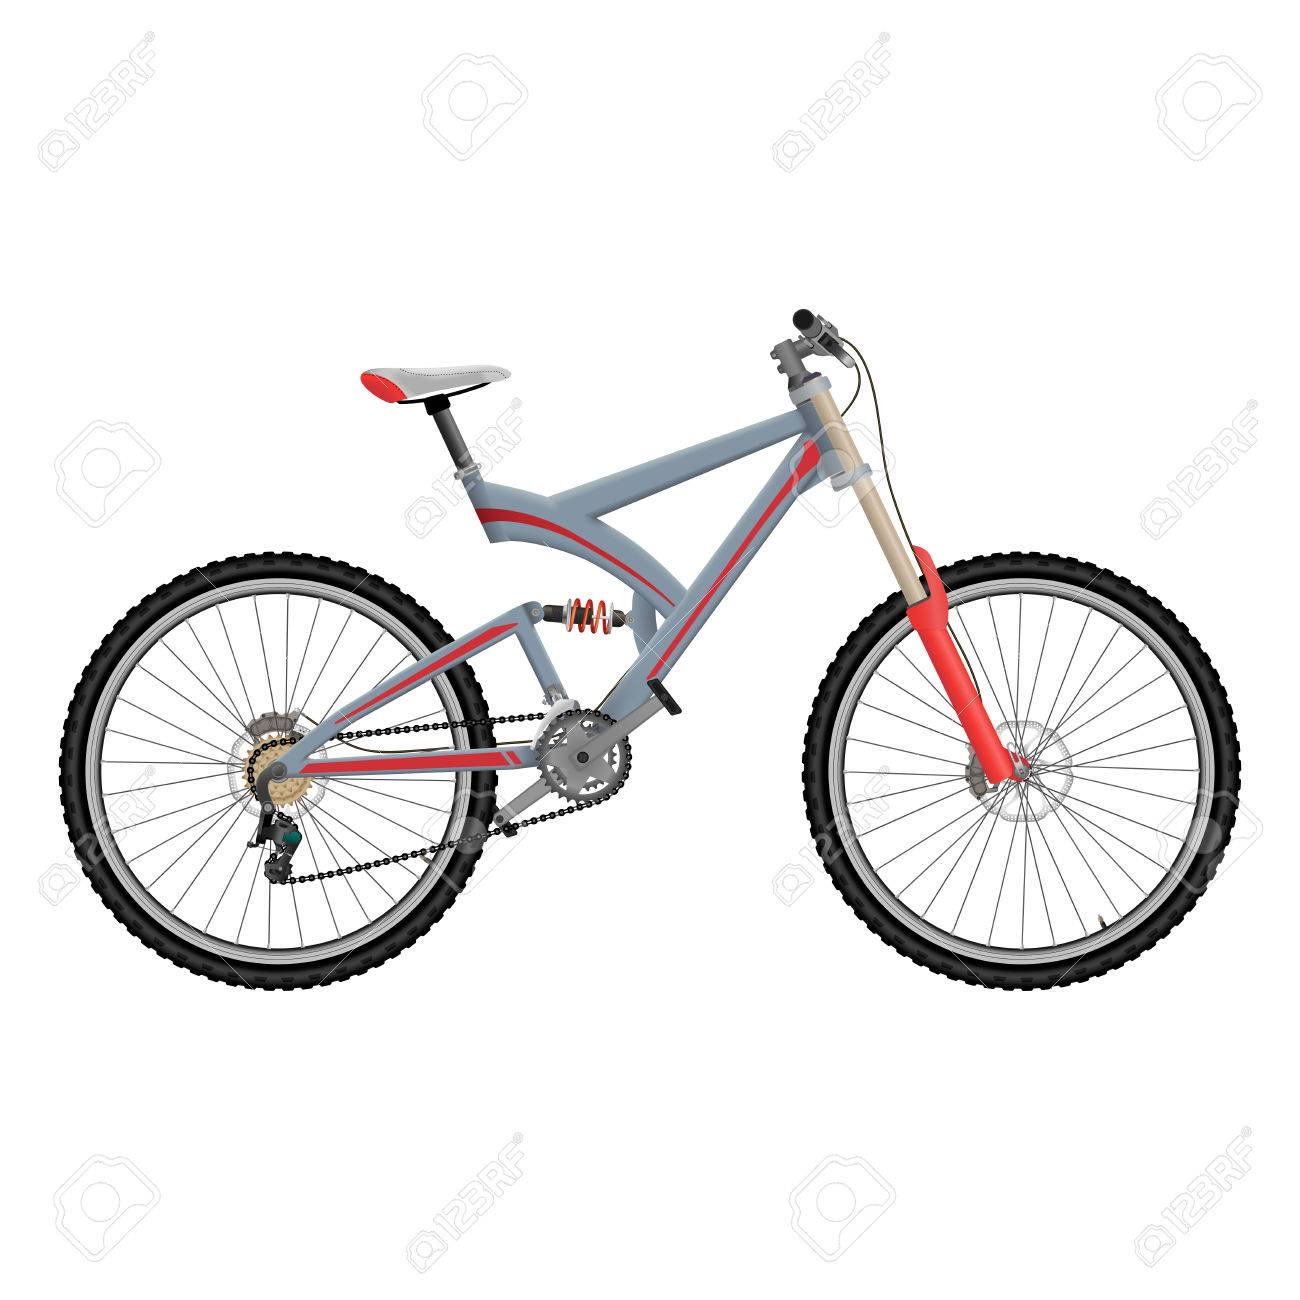 292dc2e463d Downhill extreme sport bicycle on white background. Two suspension bike  with hydraulic disc brakes.